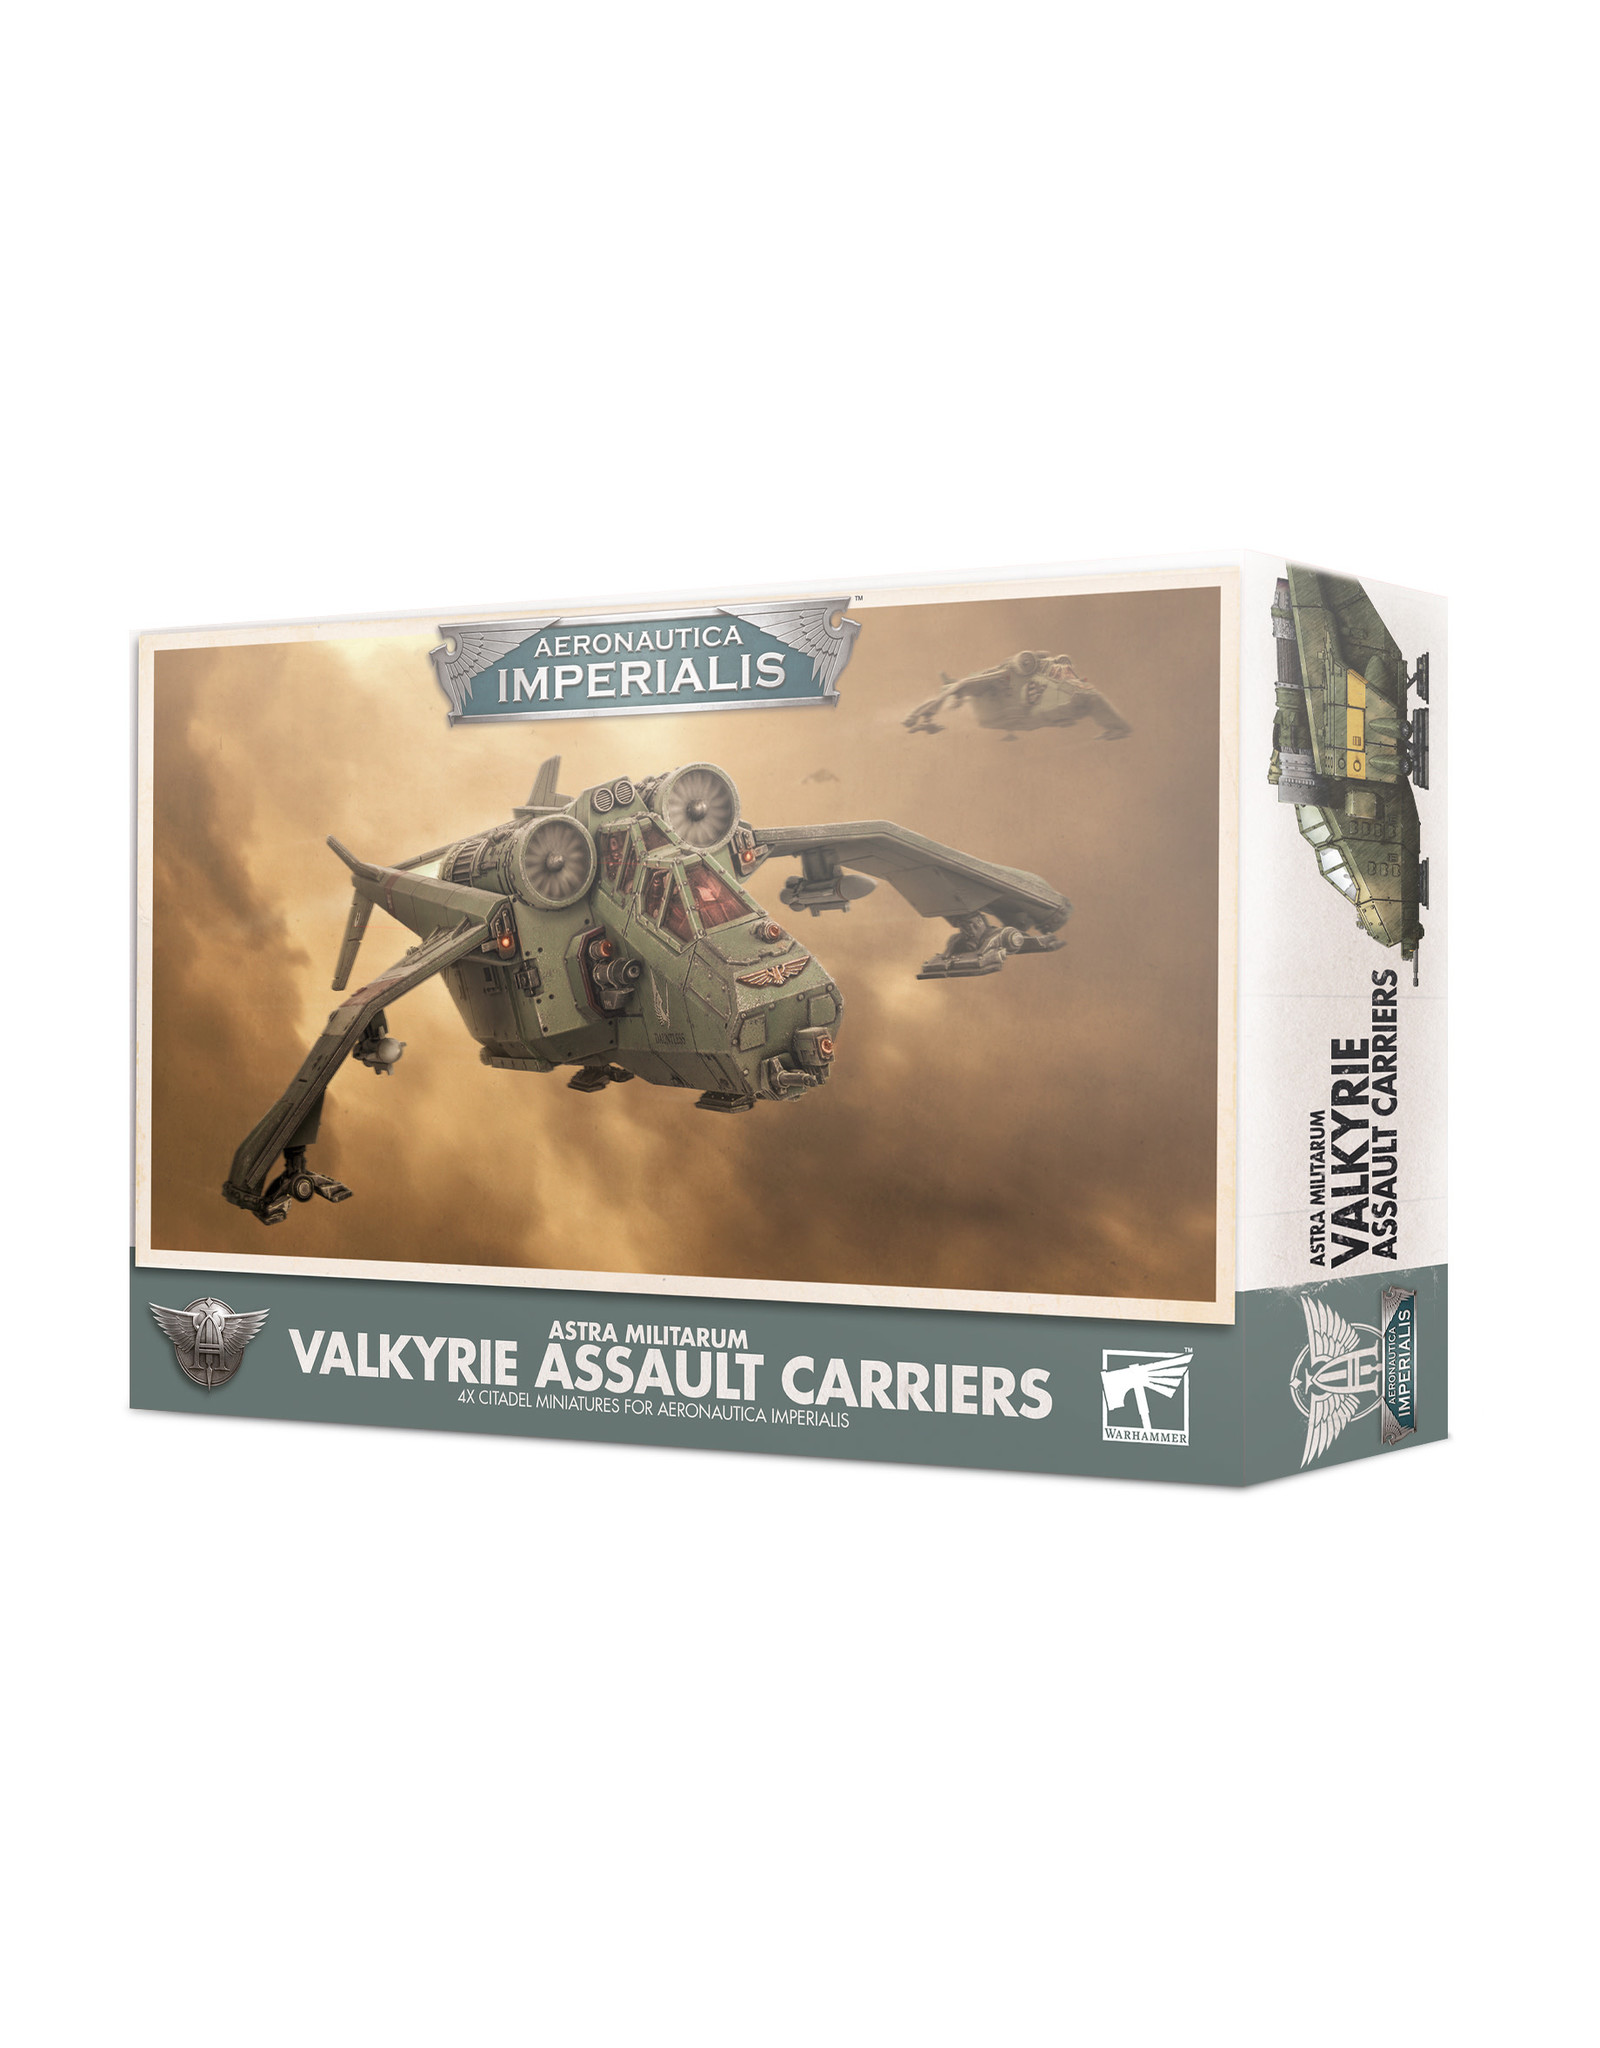 Games Workshop Aeronautica Imperialis: Aeronautica Imperialis: Valkyrie Assault Carriers